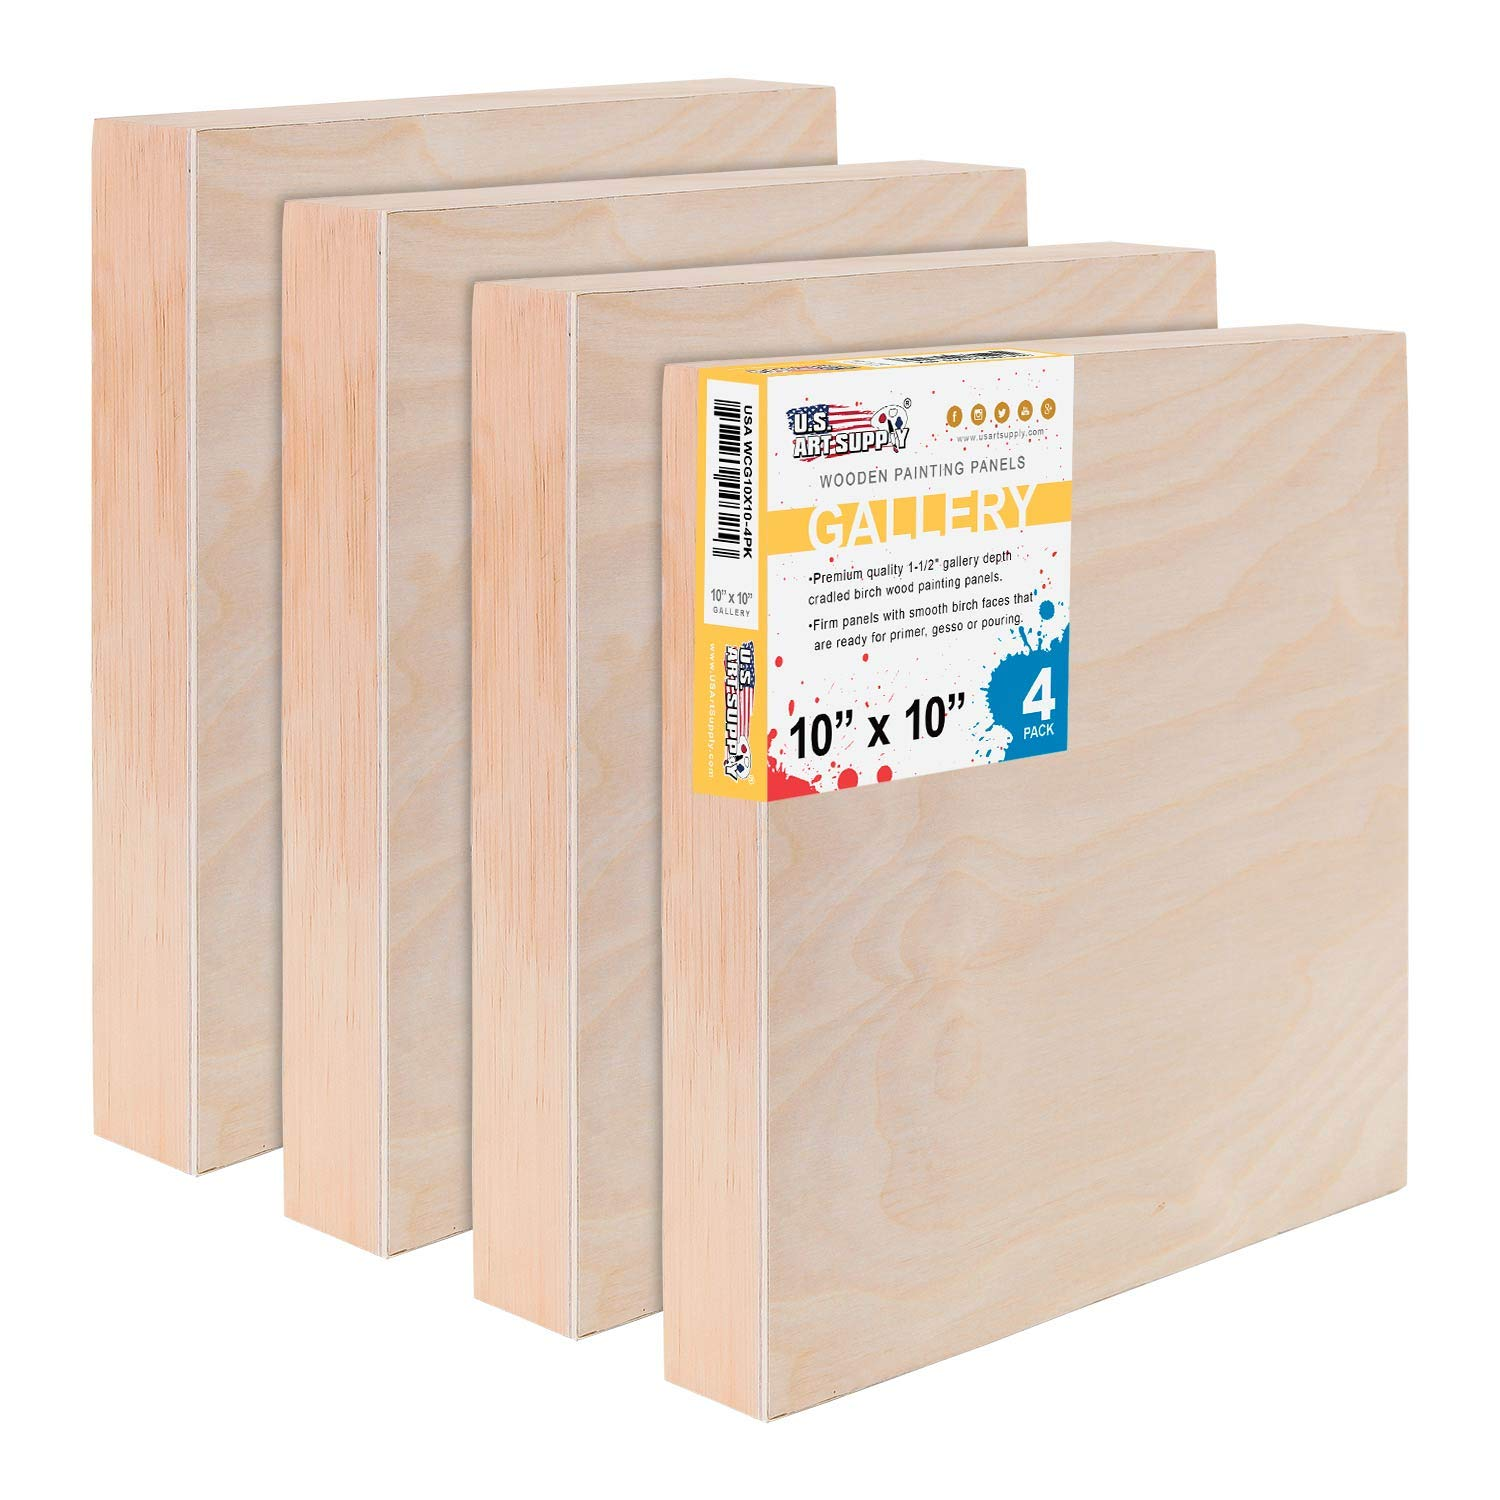 - Artist Depth Wooden Wall Canvases Gallery 1-1//2 Deep Cradle Encaustic Oil U.S Art Supply 10 x 10 Birch Wood Paint Pouring Panel Boards Pack of 4 Painting Mixed-Media Craft Acrylic